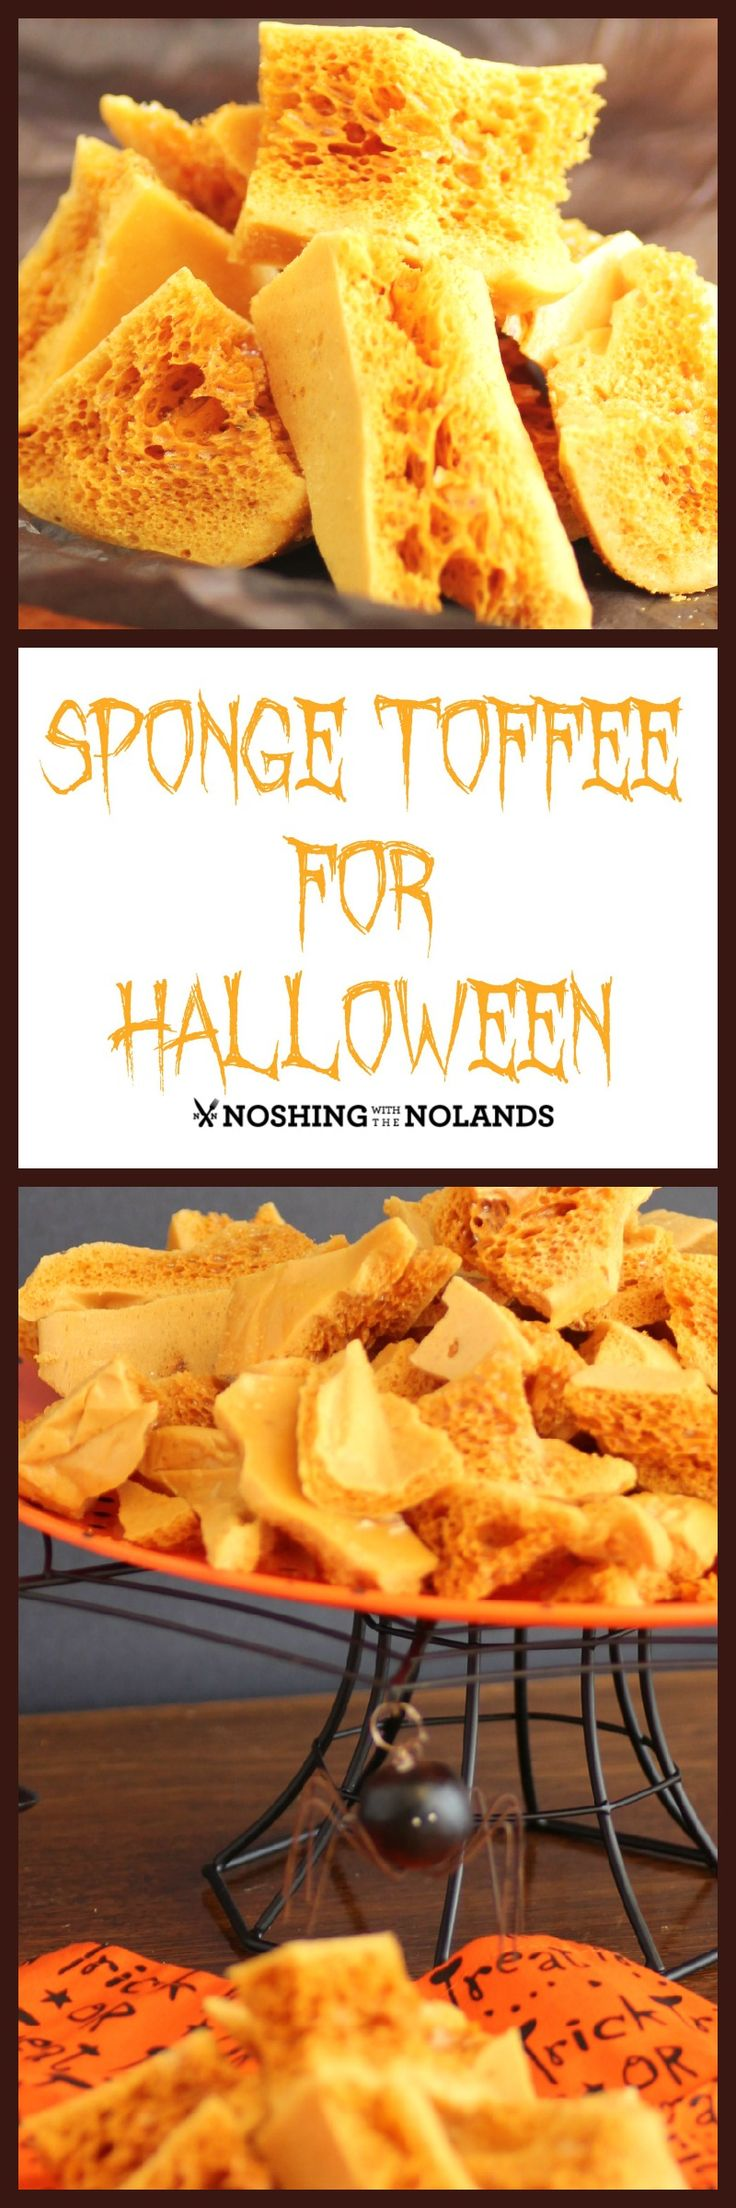 Sponge Toffee for Halloween, I have not made this since I was a child and I have to say it is one of my favorite candies. It reminds me of my childhood.